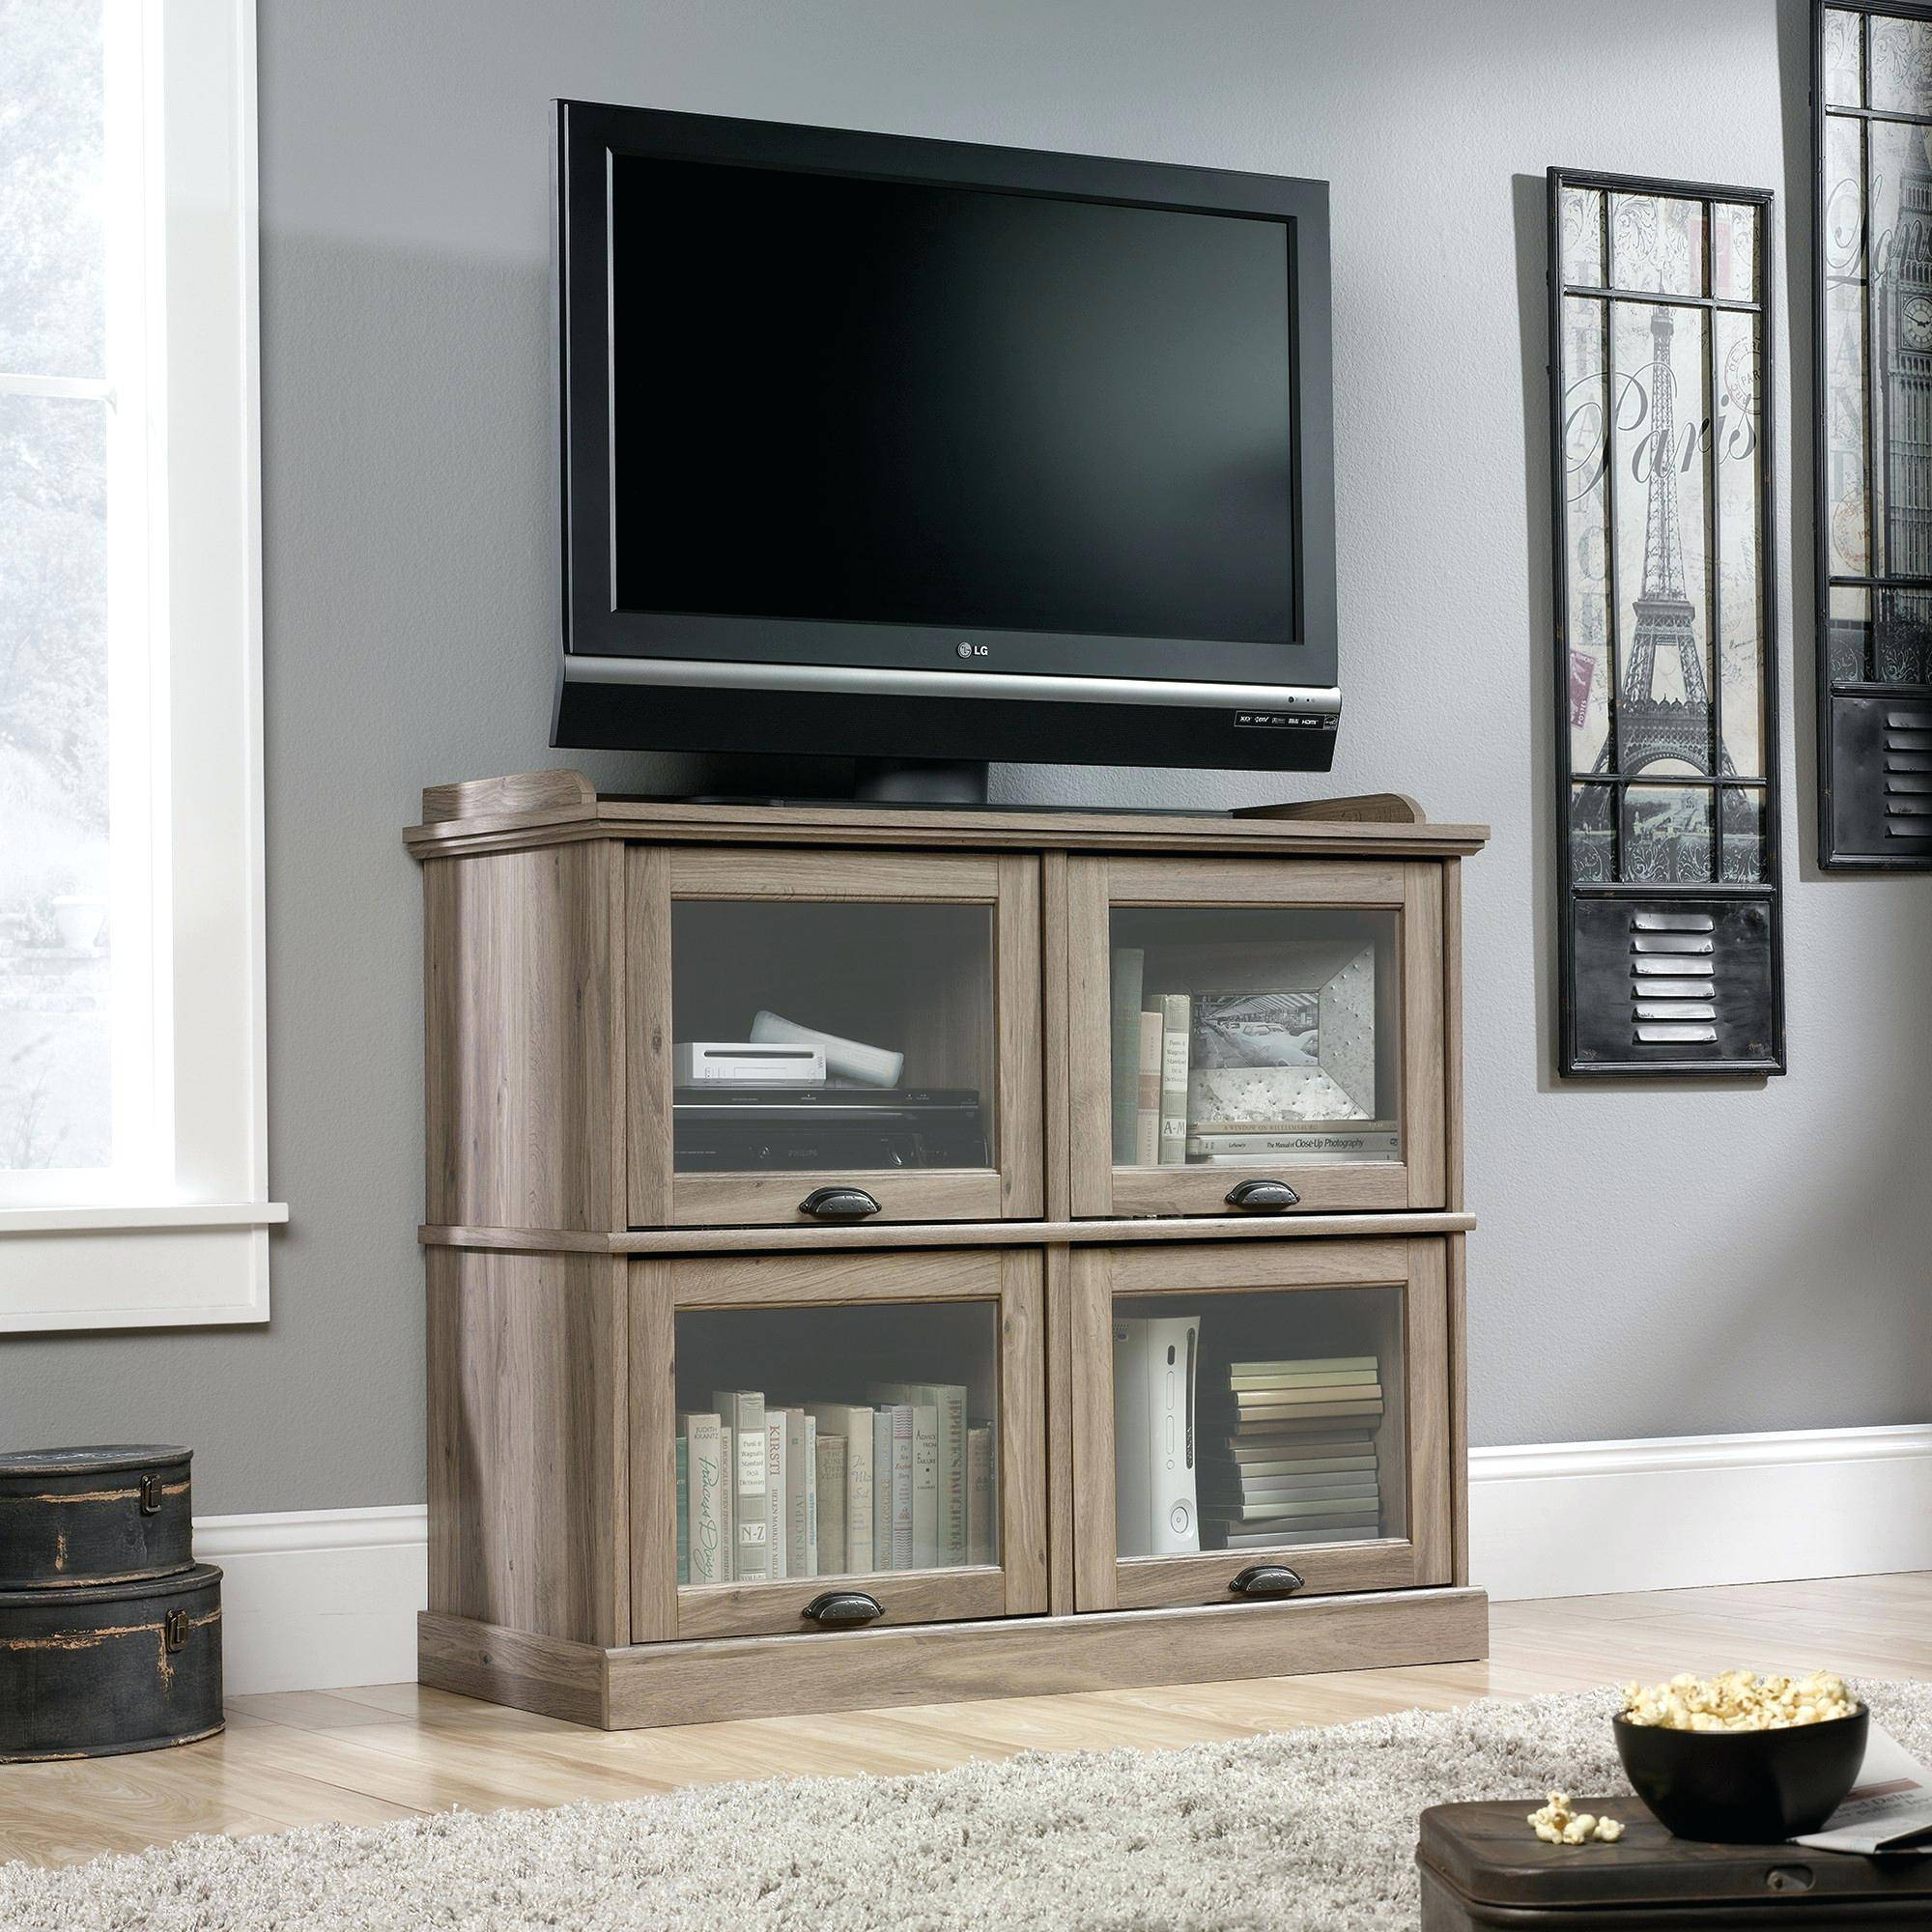 Tv Stand : Tv Stand Ideas 15 Television Stands At Walmart Corner throughout Cornet Tv Stands (Image 12 of 15)